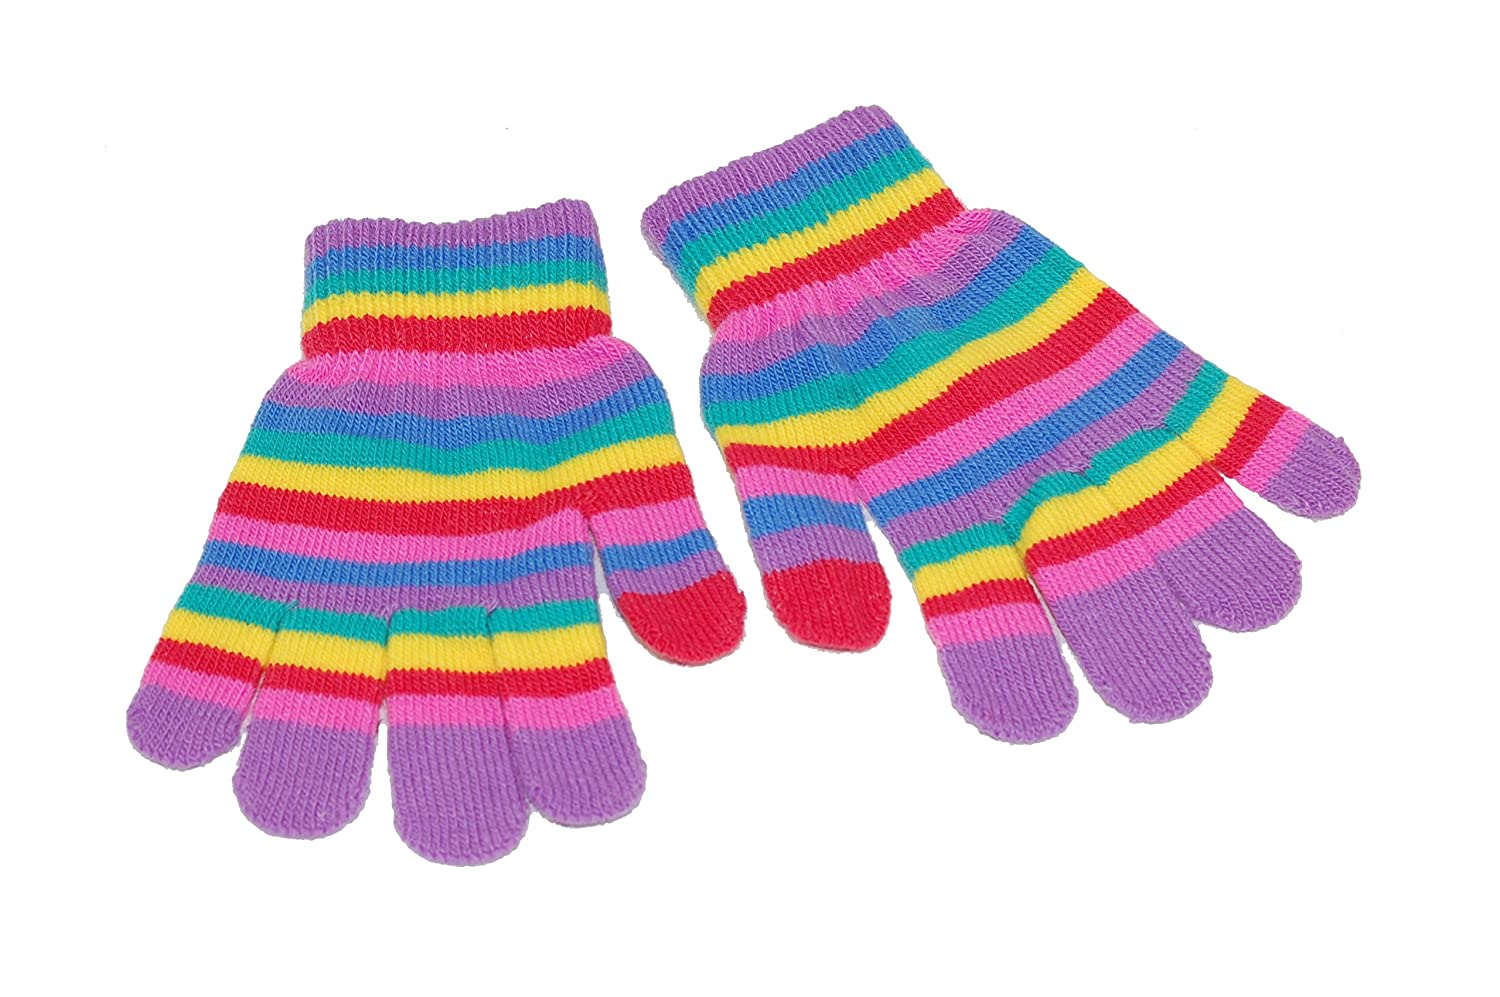 GIZZY® Rainbow Design Children's Magic Stretch Gloves.